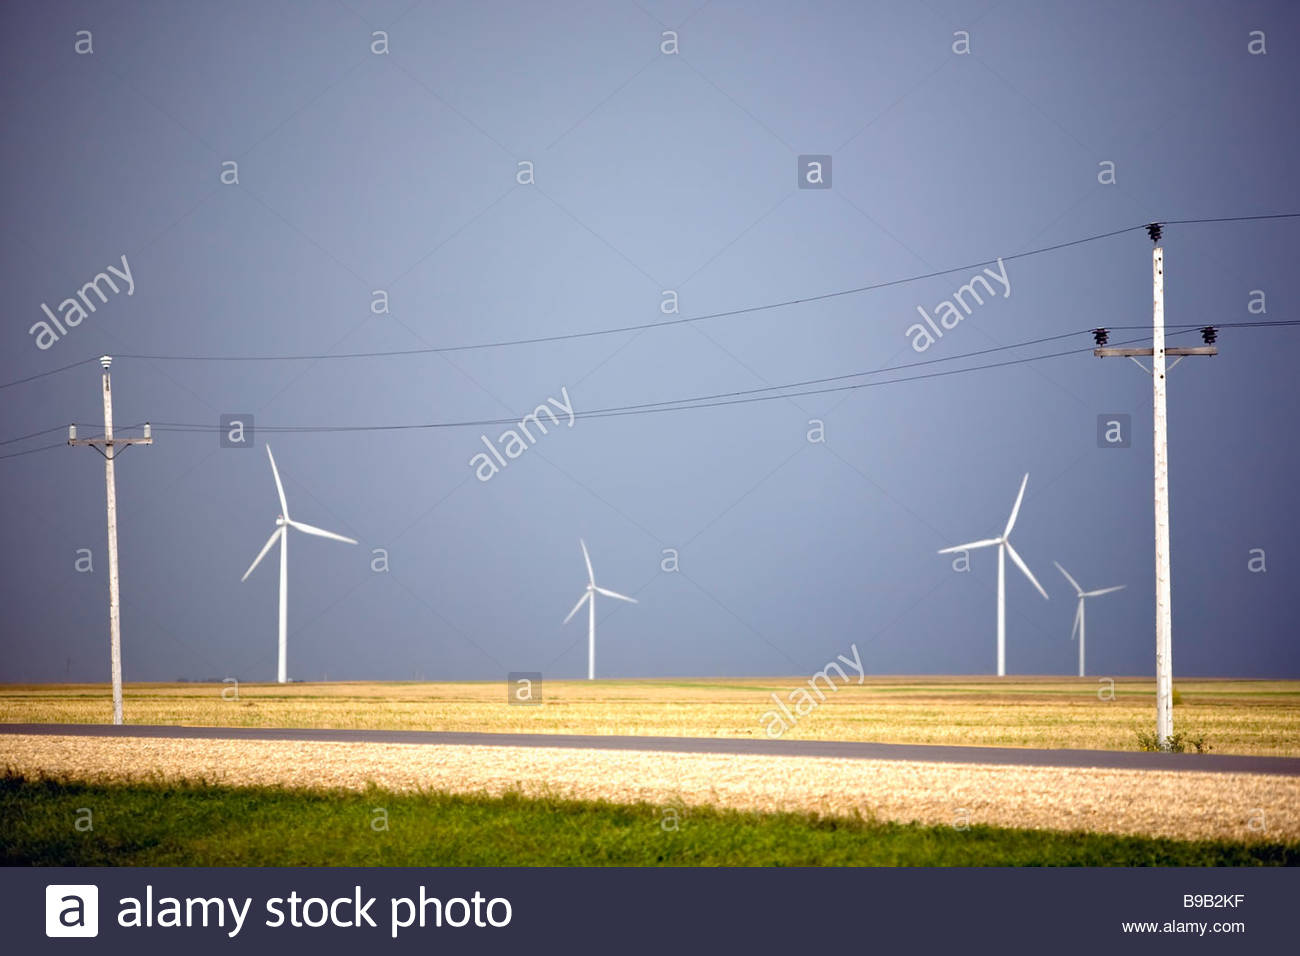 Wind energy turbines and Power transmission lines, St. Leon, Manitoba, Canada. - Stock Image